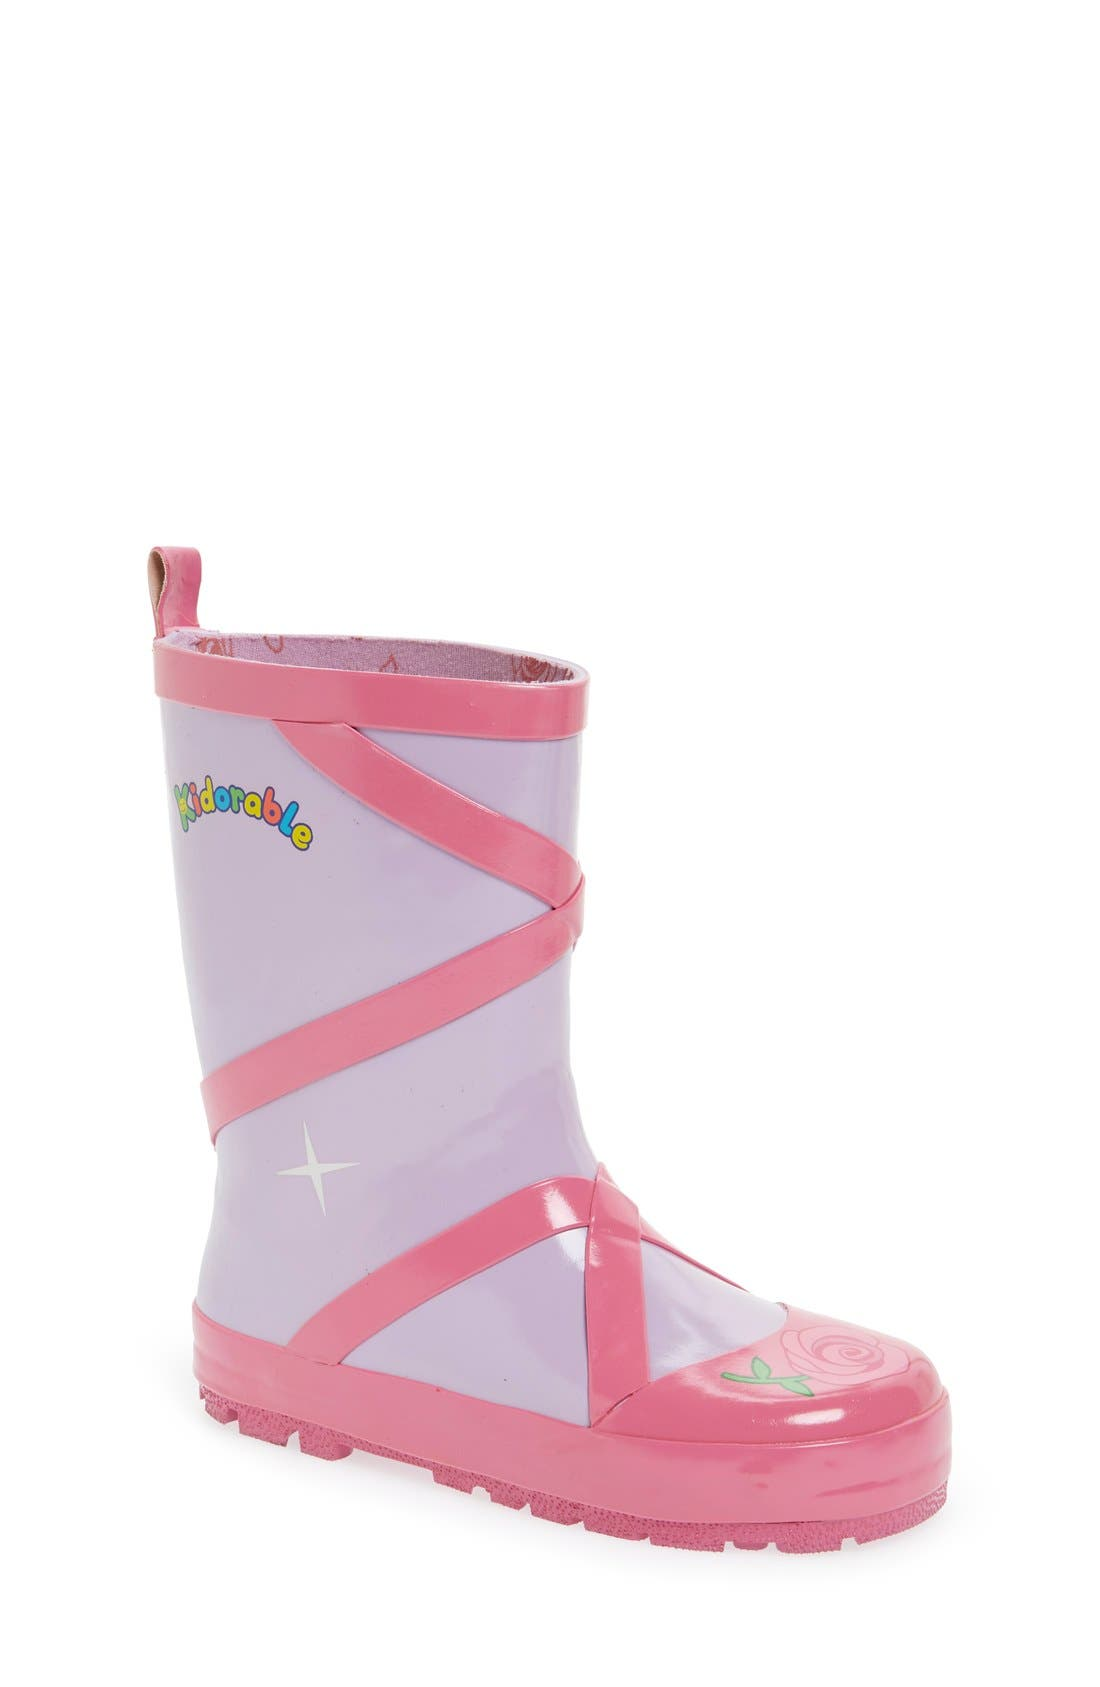 'Ballerina' Waterproof Rain Boot,                         Main,                         color, 550